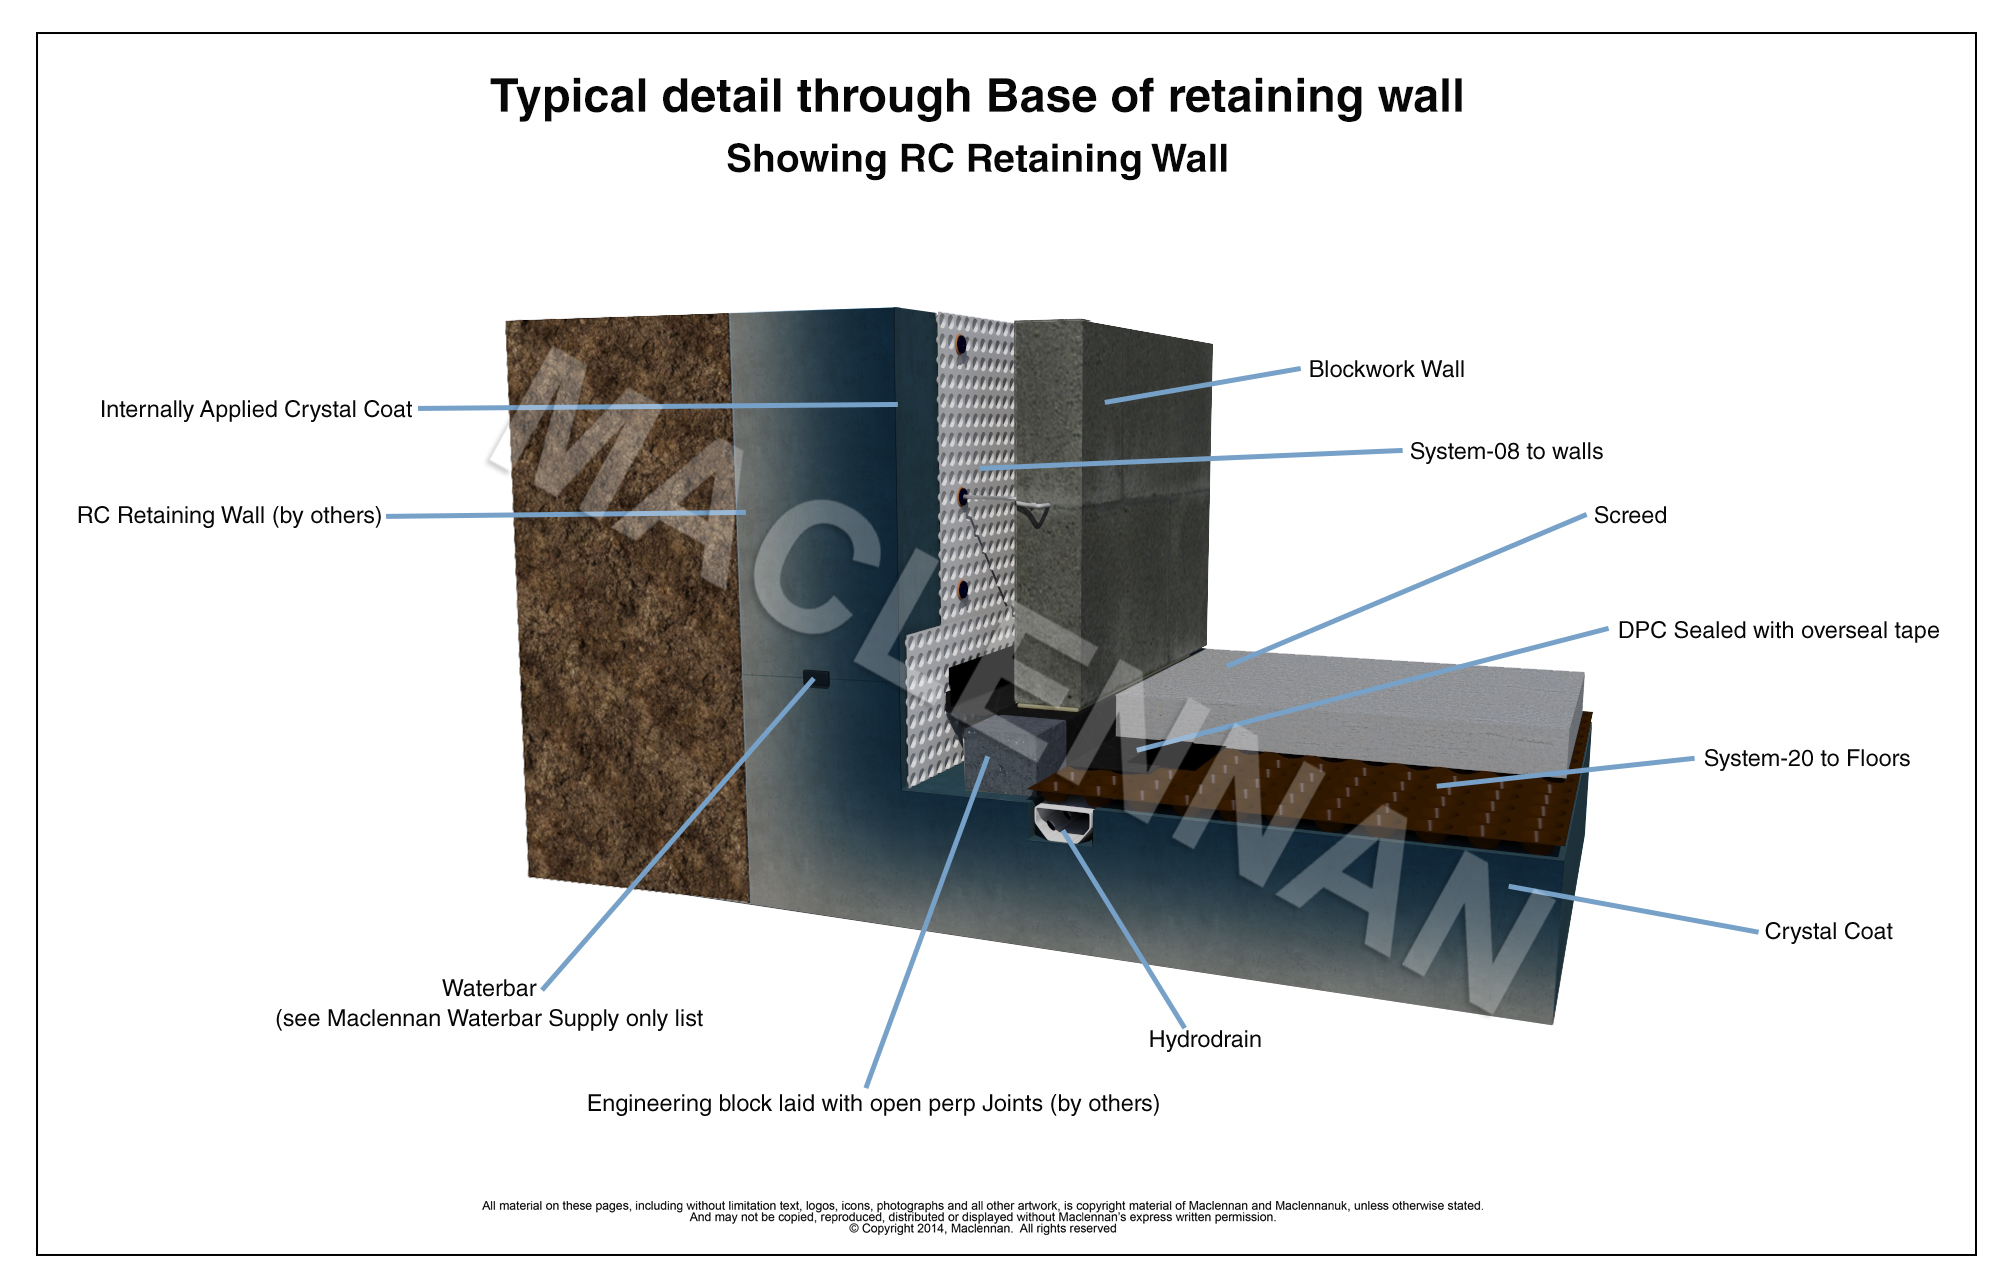 image showing MacLennan Waterproofing cavity membrane system